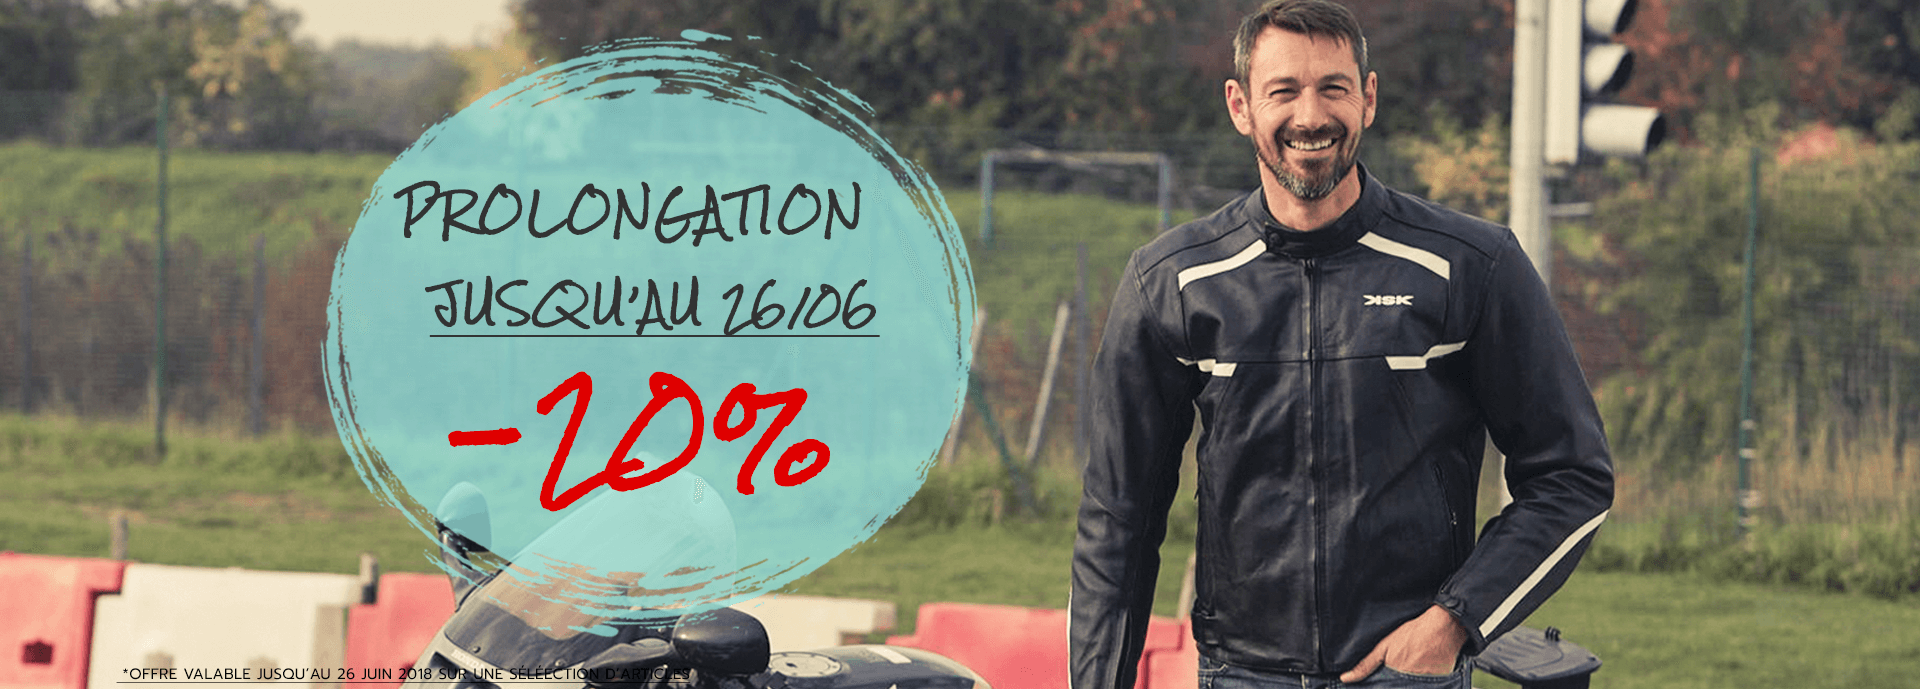 Prolongation promo -20%